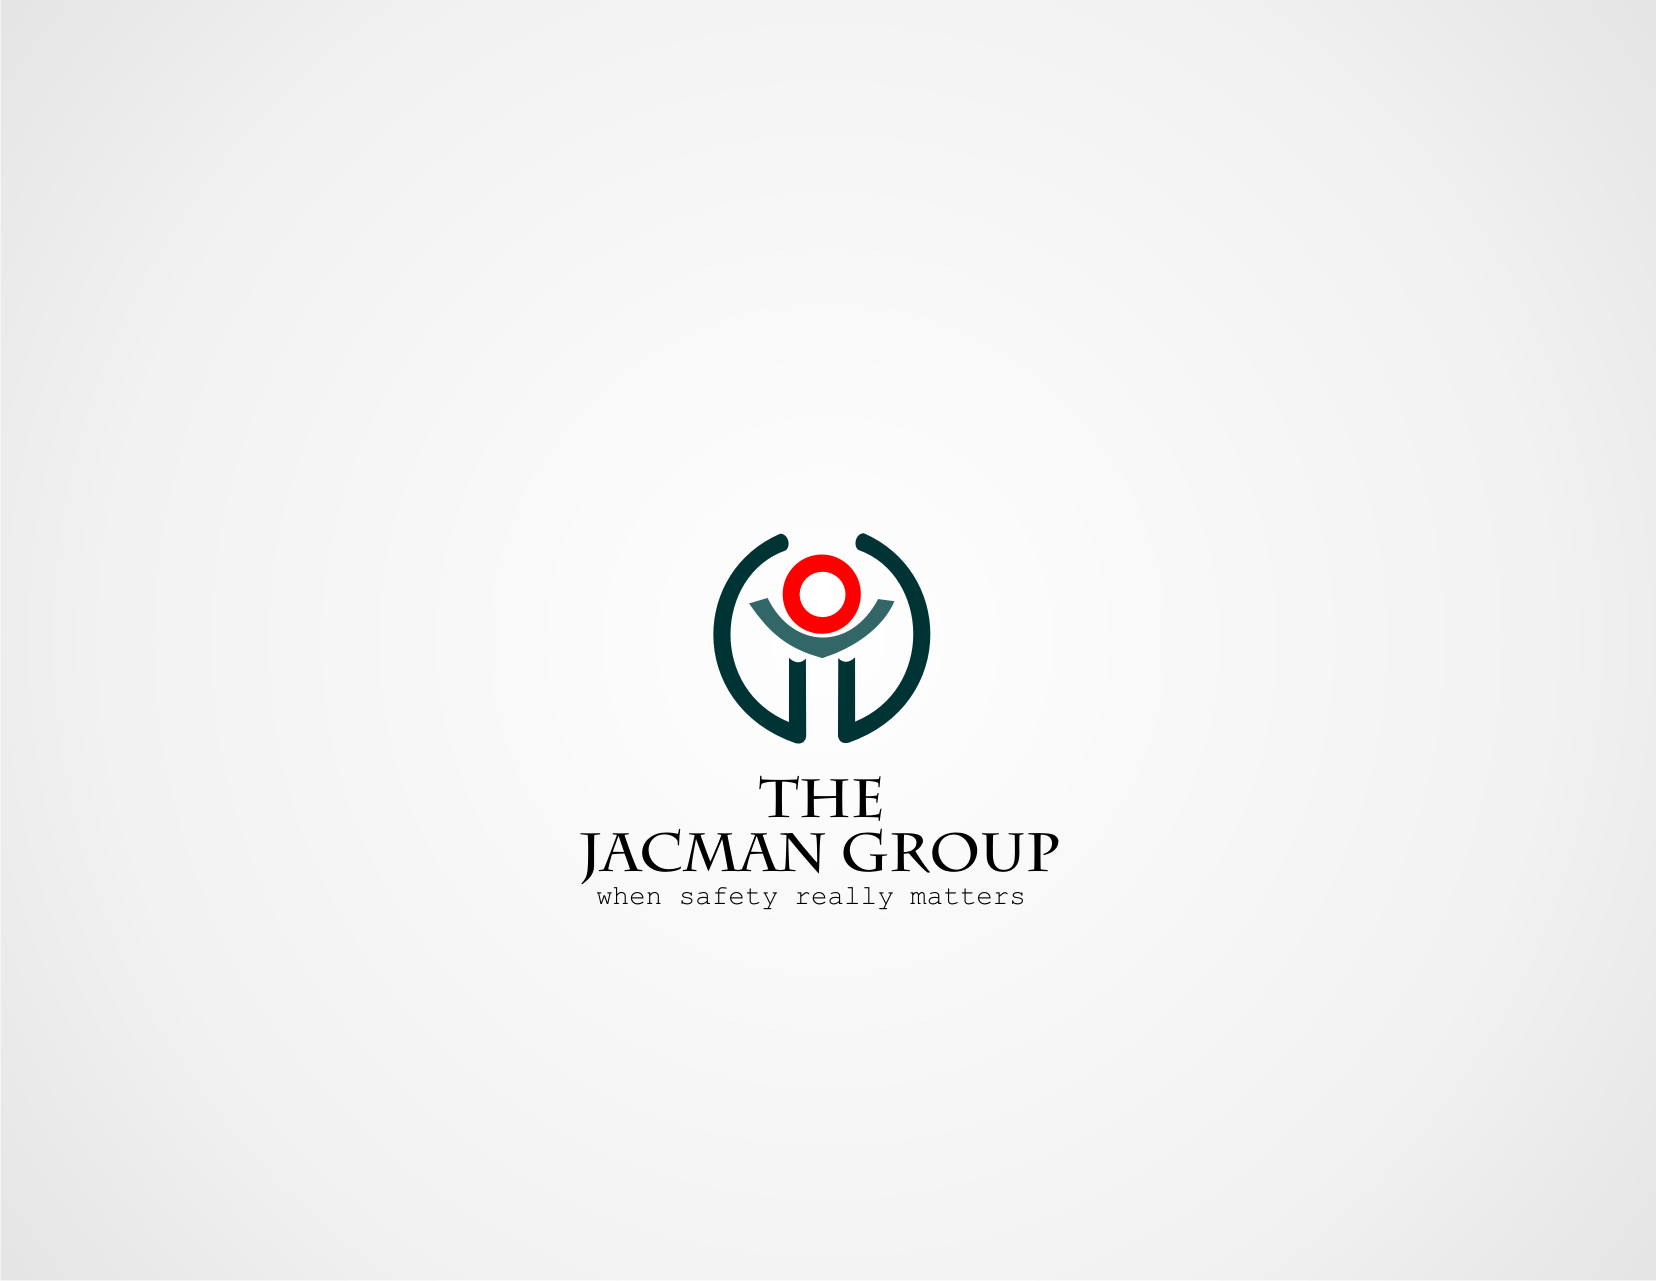 the jacman group logo design